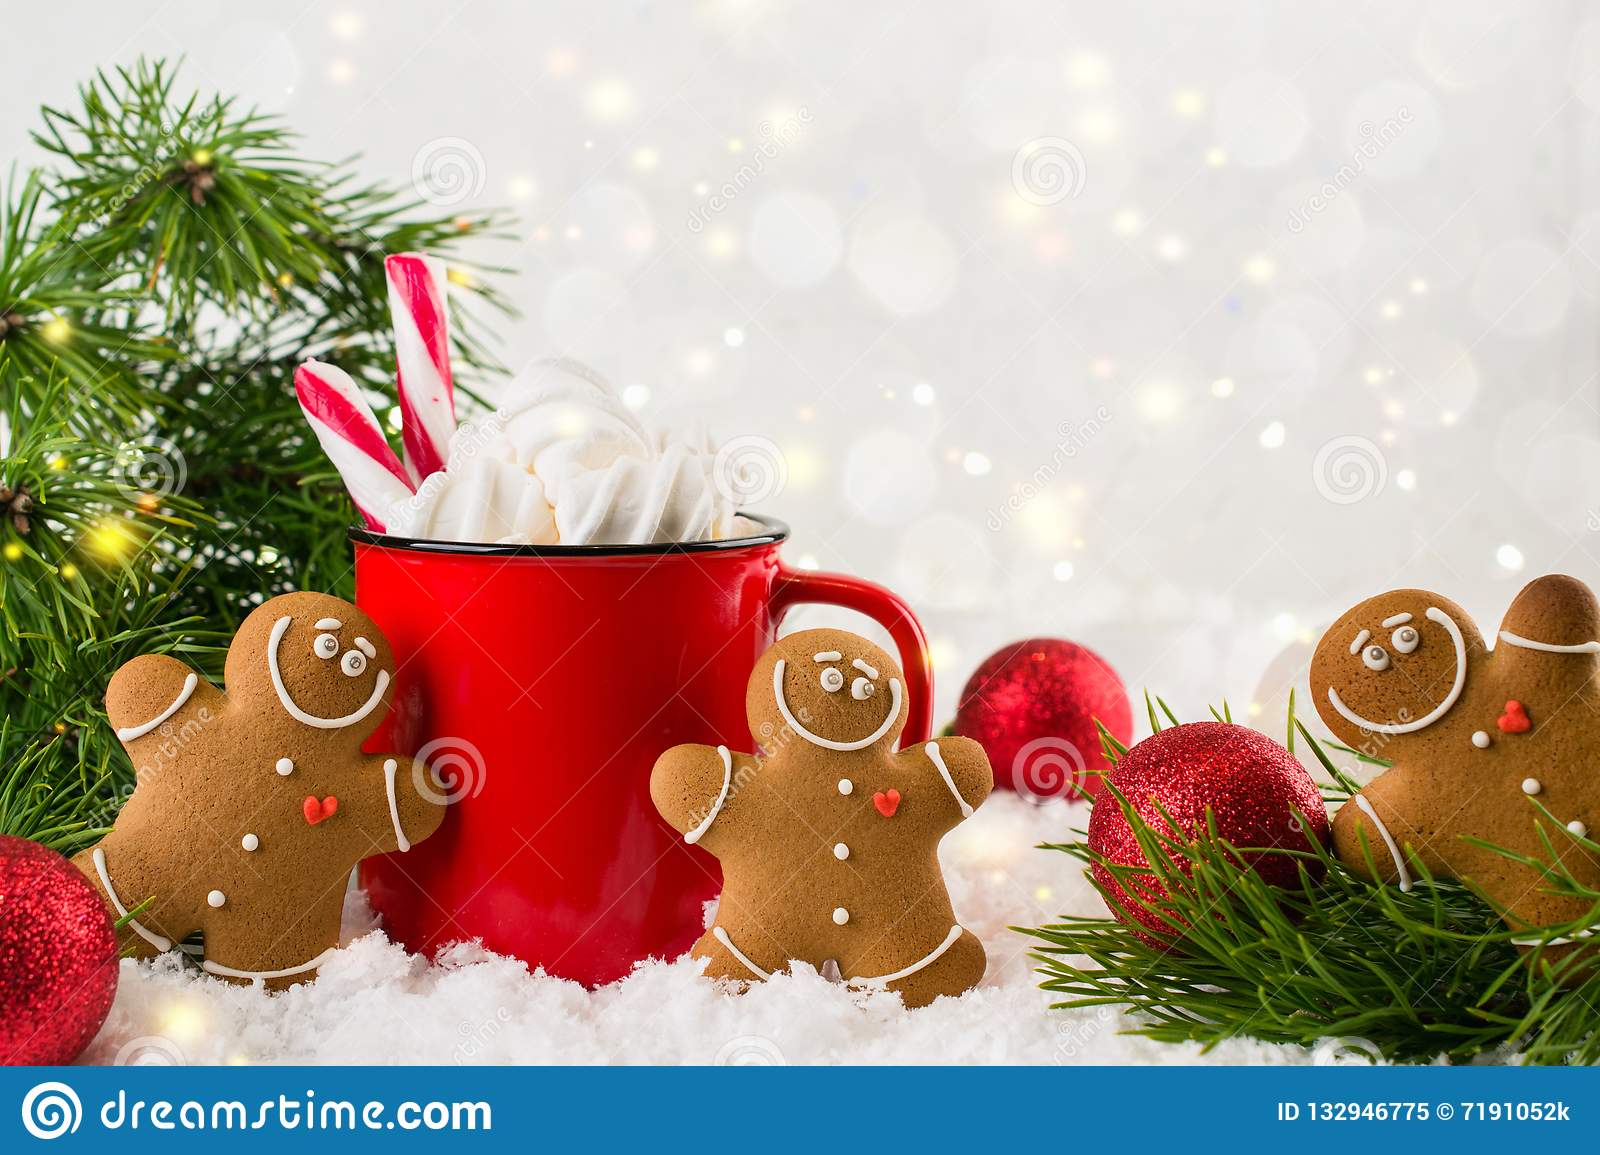 Cozy winter composition with a red cup of hot chocolate with marshmallows gingerbread man cookies on a festive background